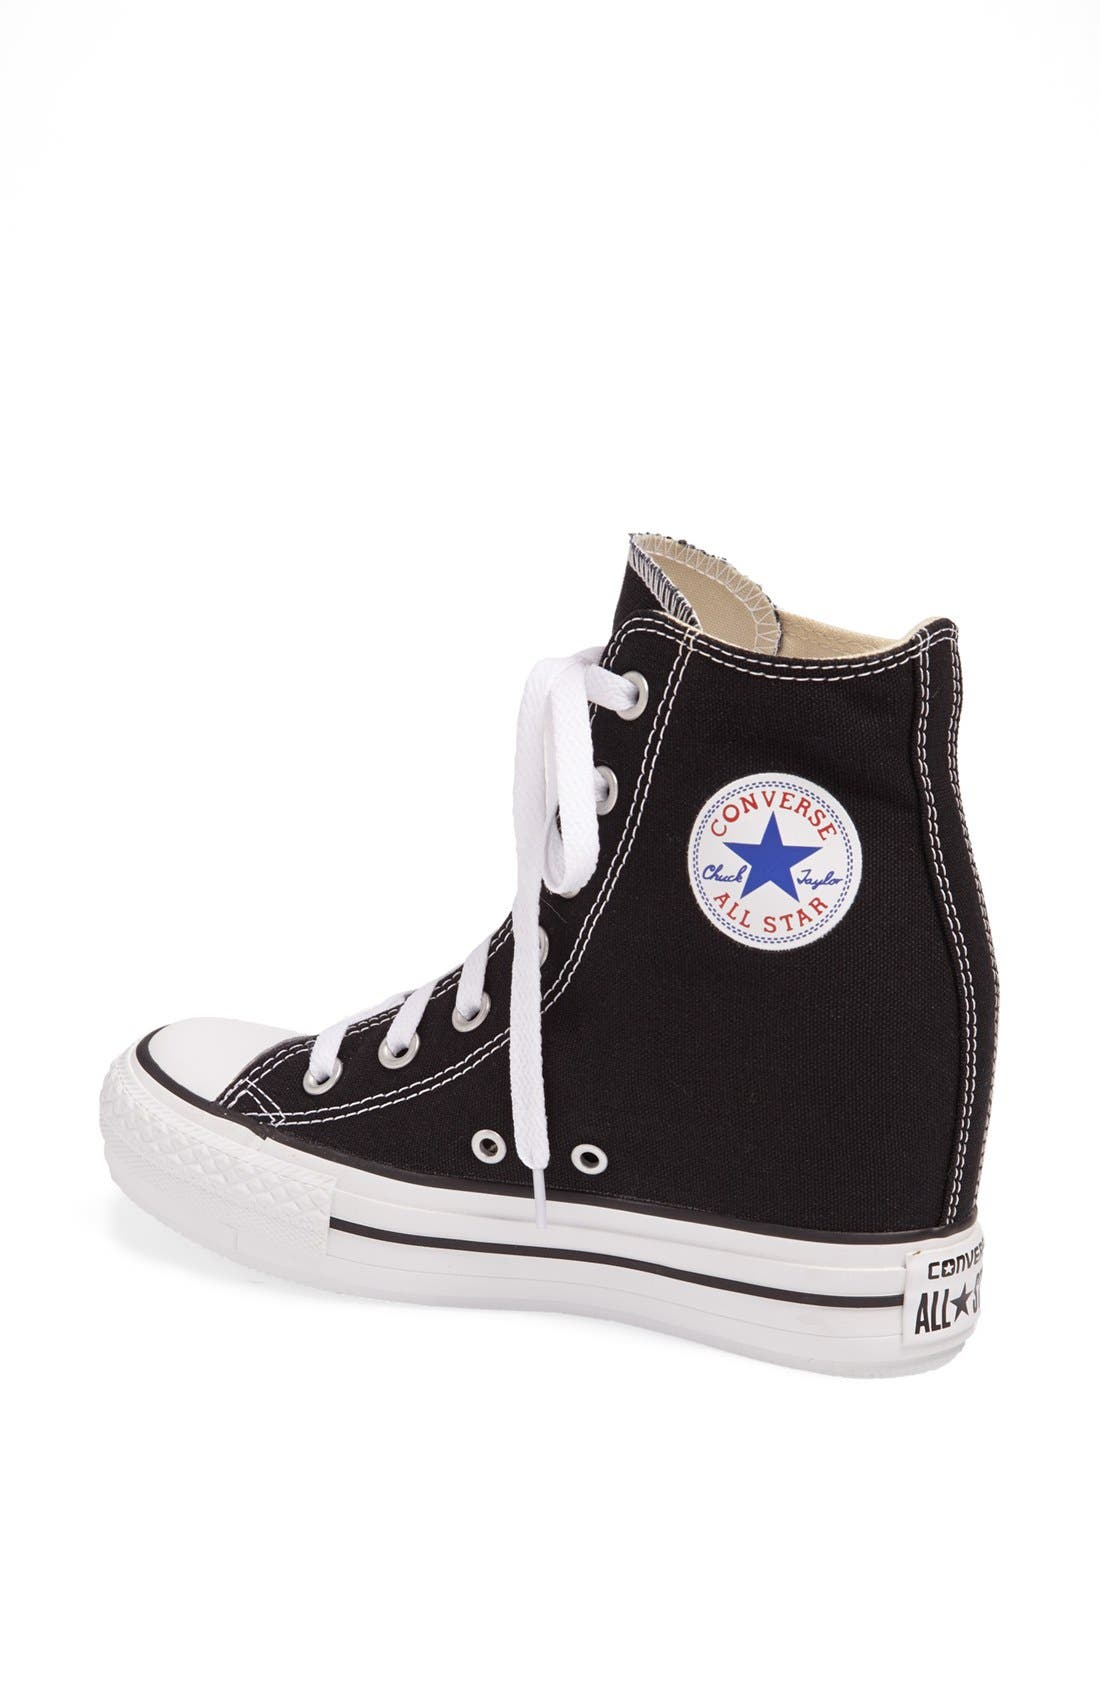 Chuck Taylor<sup>®</sup> All Star<sup>®</sup> Hidden Wedge Platform High-Top Sneaker,                             Alternate thumbnail 2, color,                             001